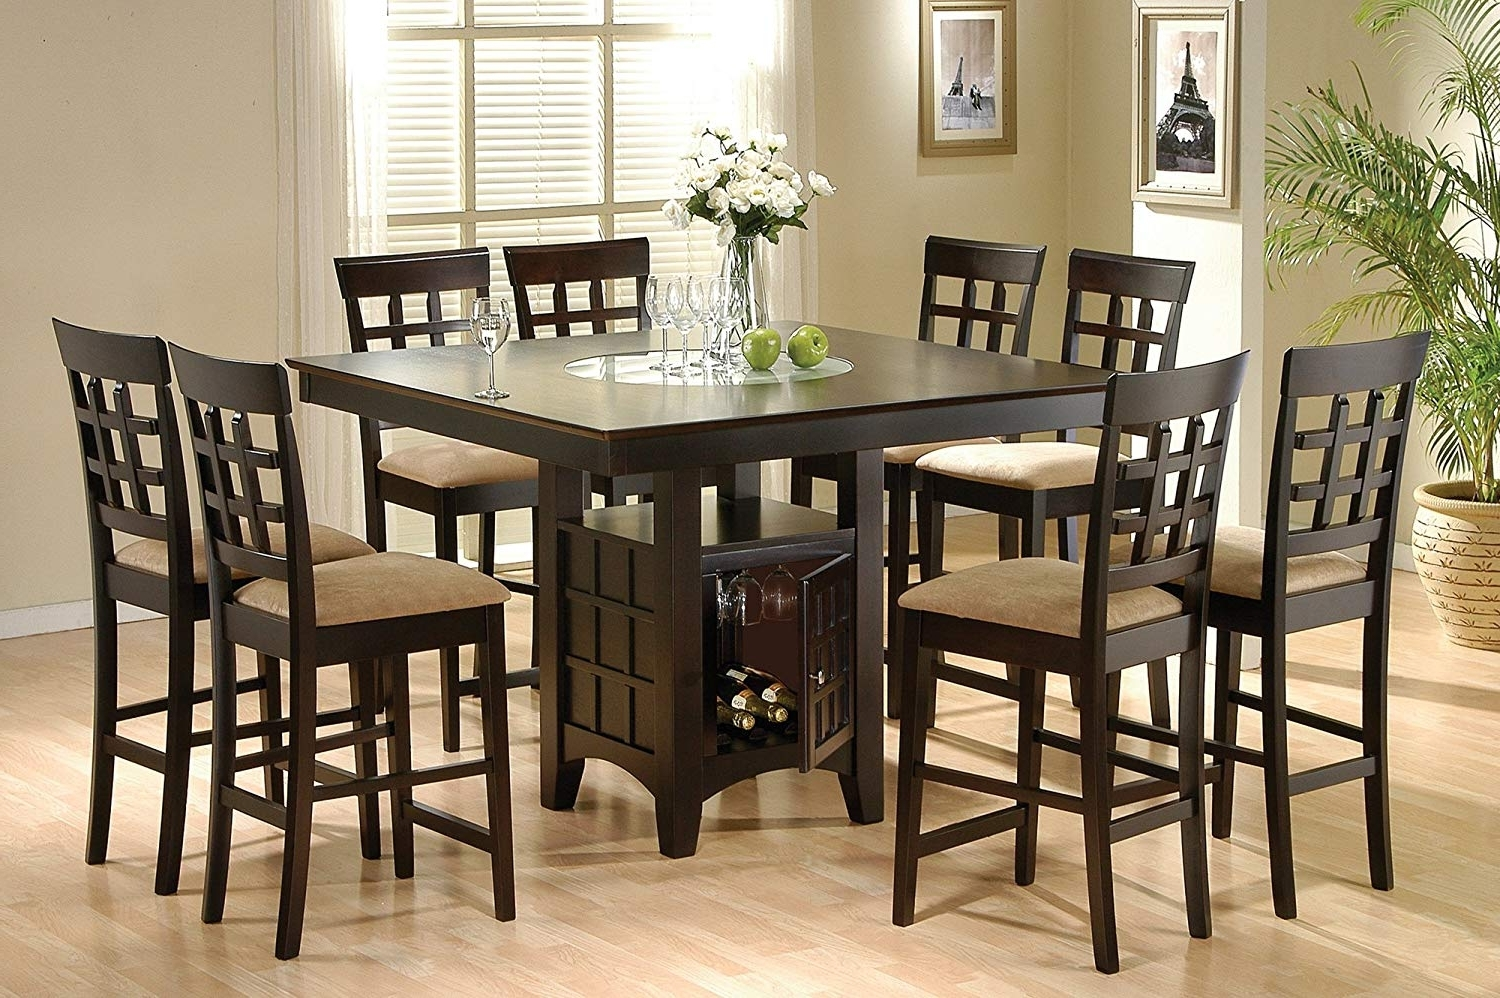 Amazon – Coaster Home Furnishings 9 Piece Counter Height Storage Regarding Fashionable Rocco 7 Piece Extension Dining Sets (View 17 of 25)